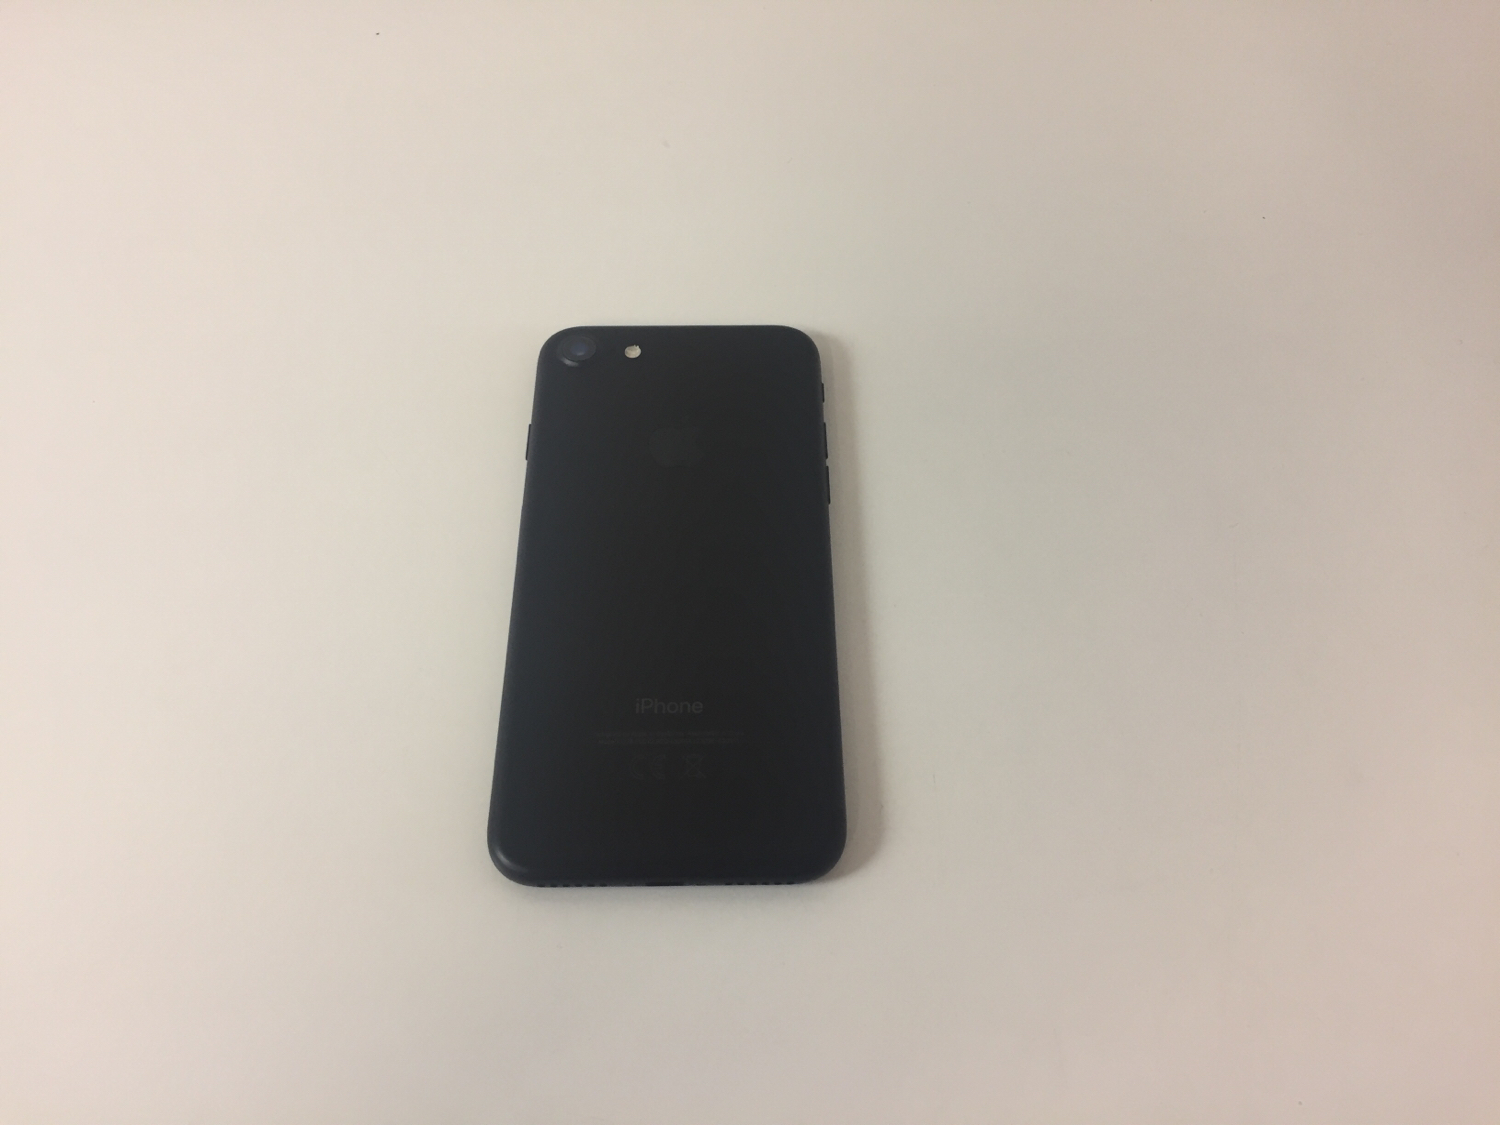 iPhone 7 128GB, 128GB, Black, bild 2